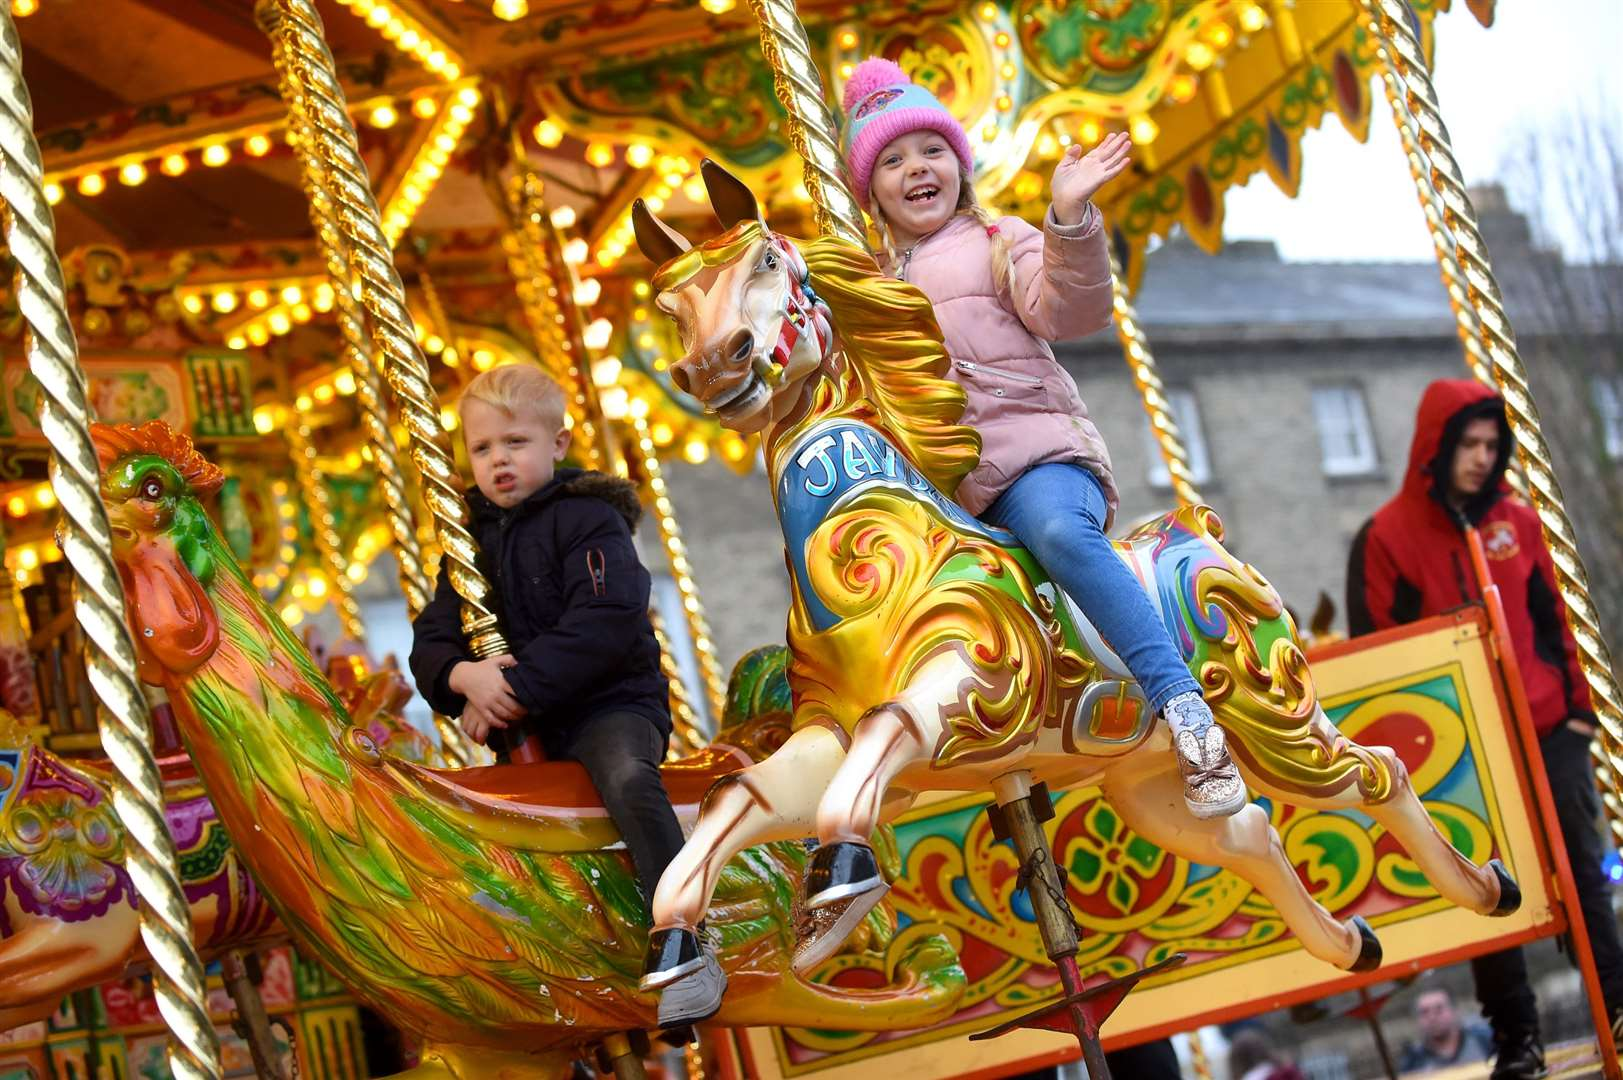 Bury St Edmunds Christmas Fayre 2019...Pictured: Daniel (5) and Lily Heal (7) enjoying the carousel ....PICTURE: Mecha Morton ..... (22425848)